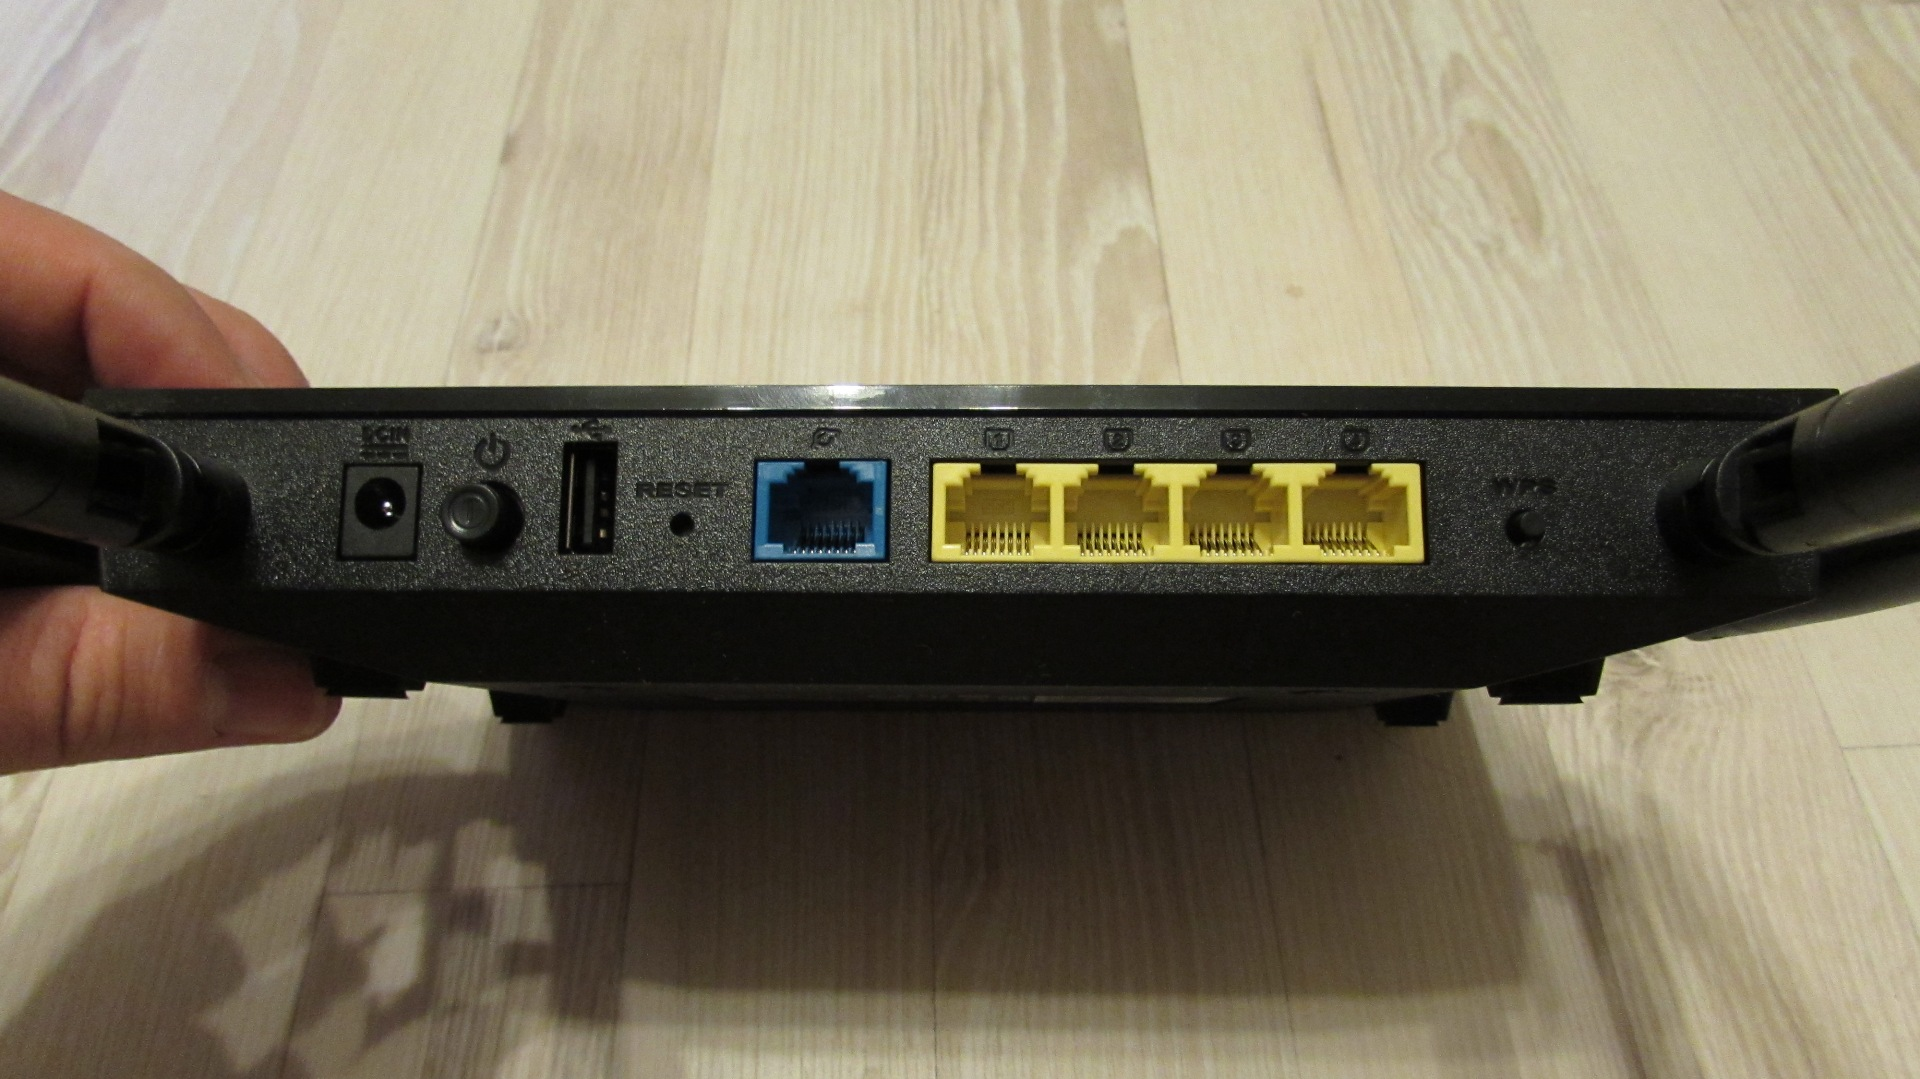 openlinksys.info/images/rt-ac1200g/IMG_0592.JPG